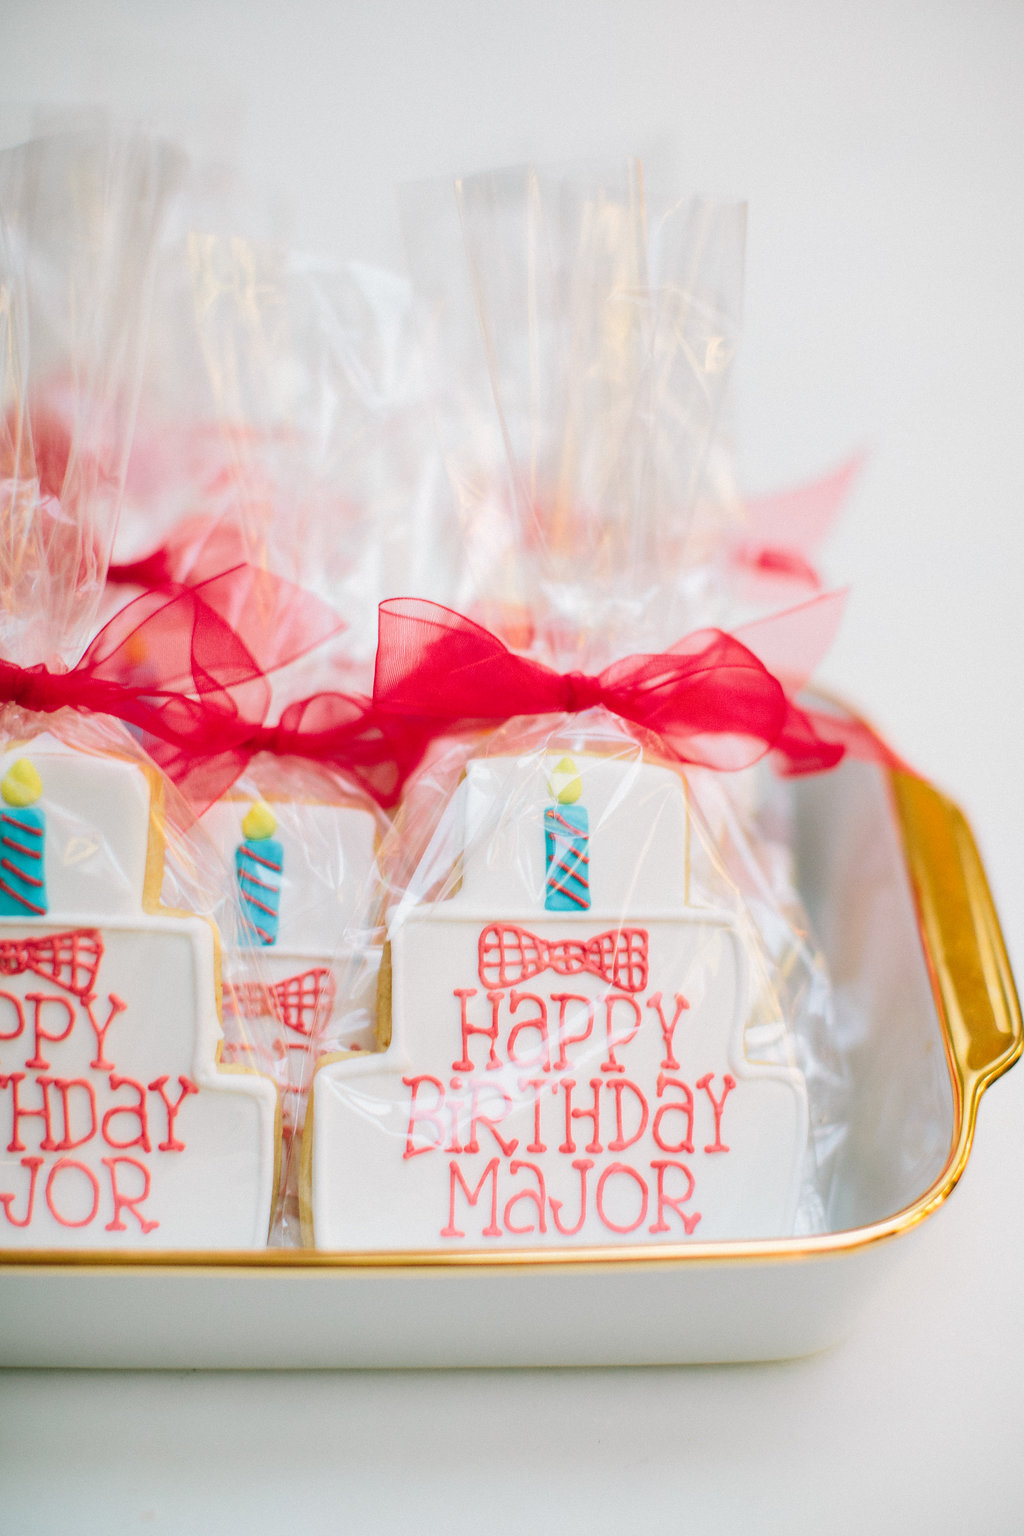 custom cookie favors for guests at Major Martino's first birthday party